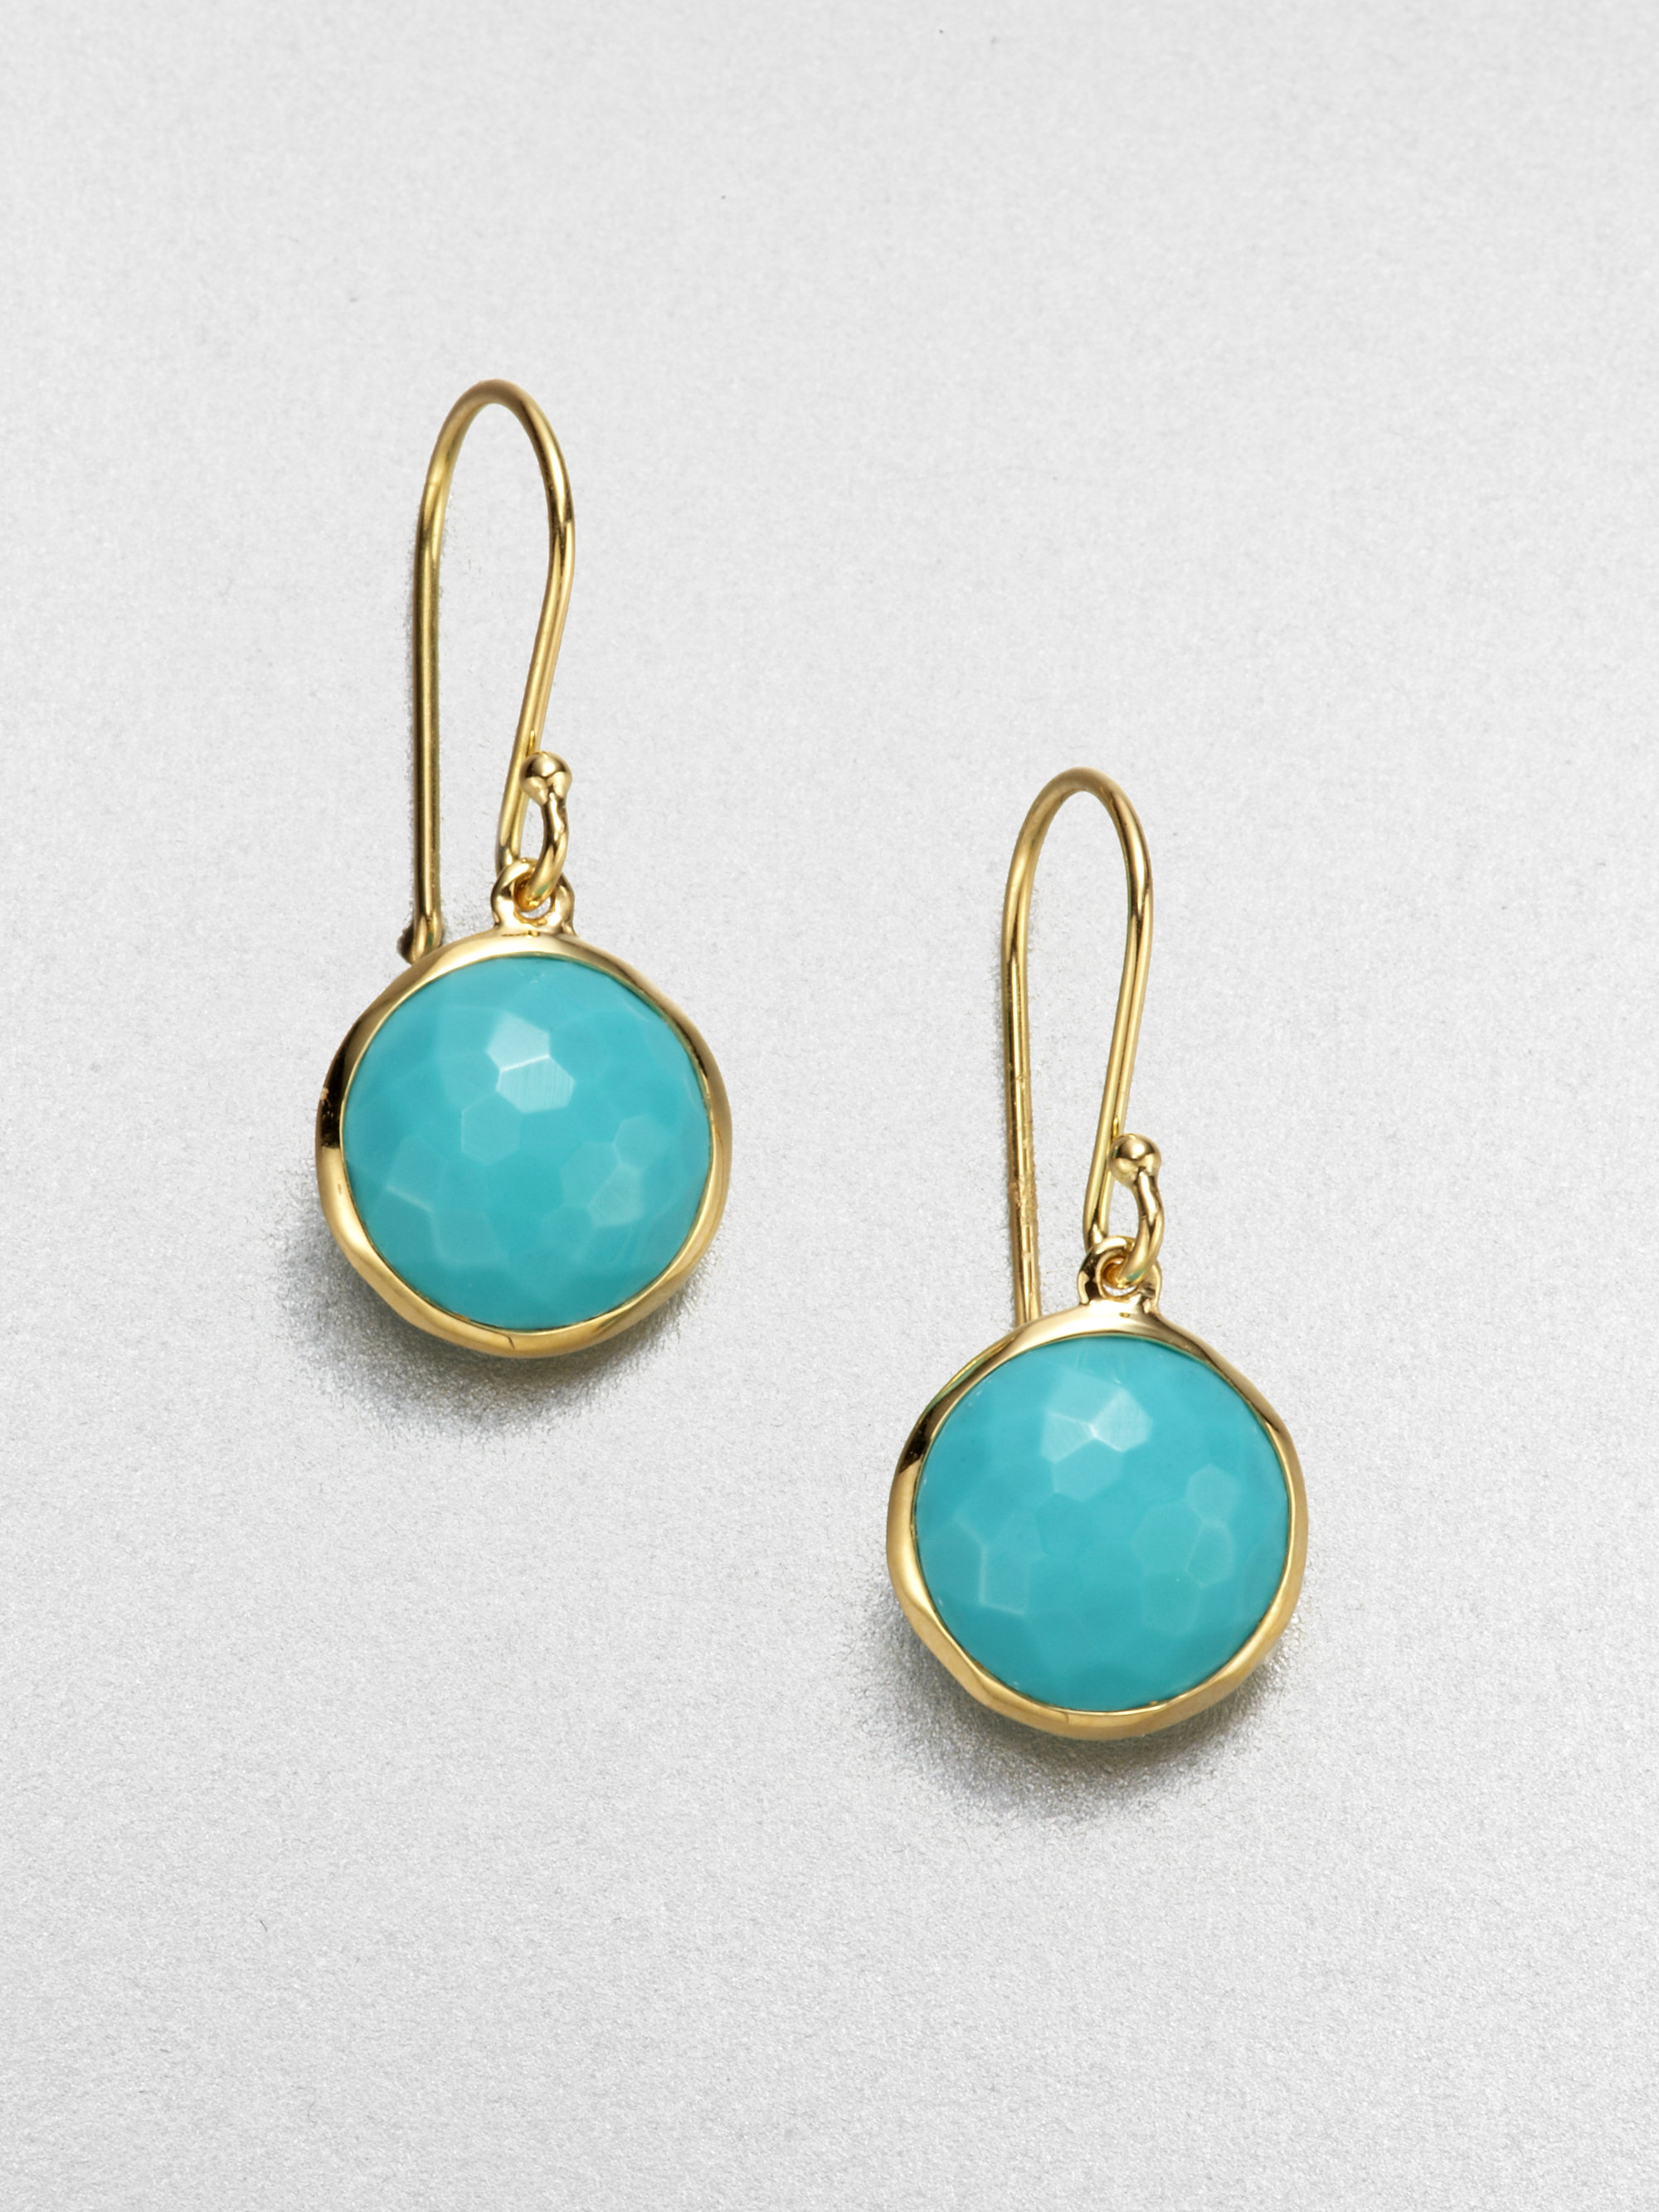 Gold And Turquoise Fashion Jewelry